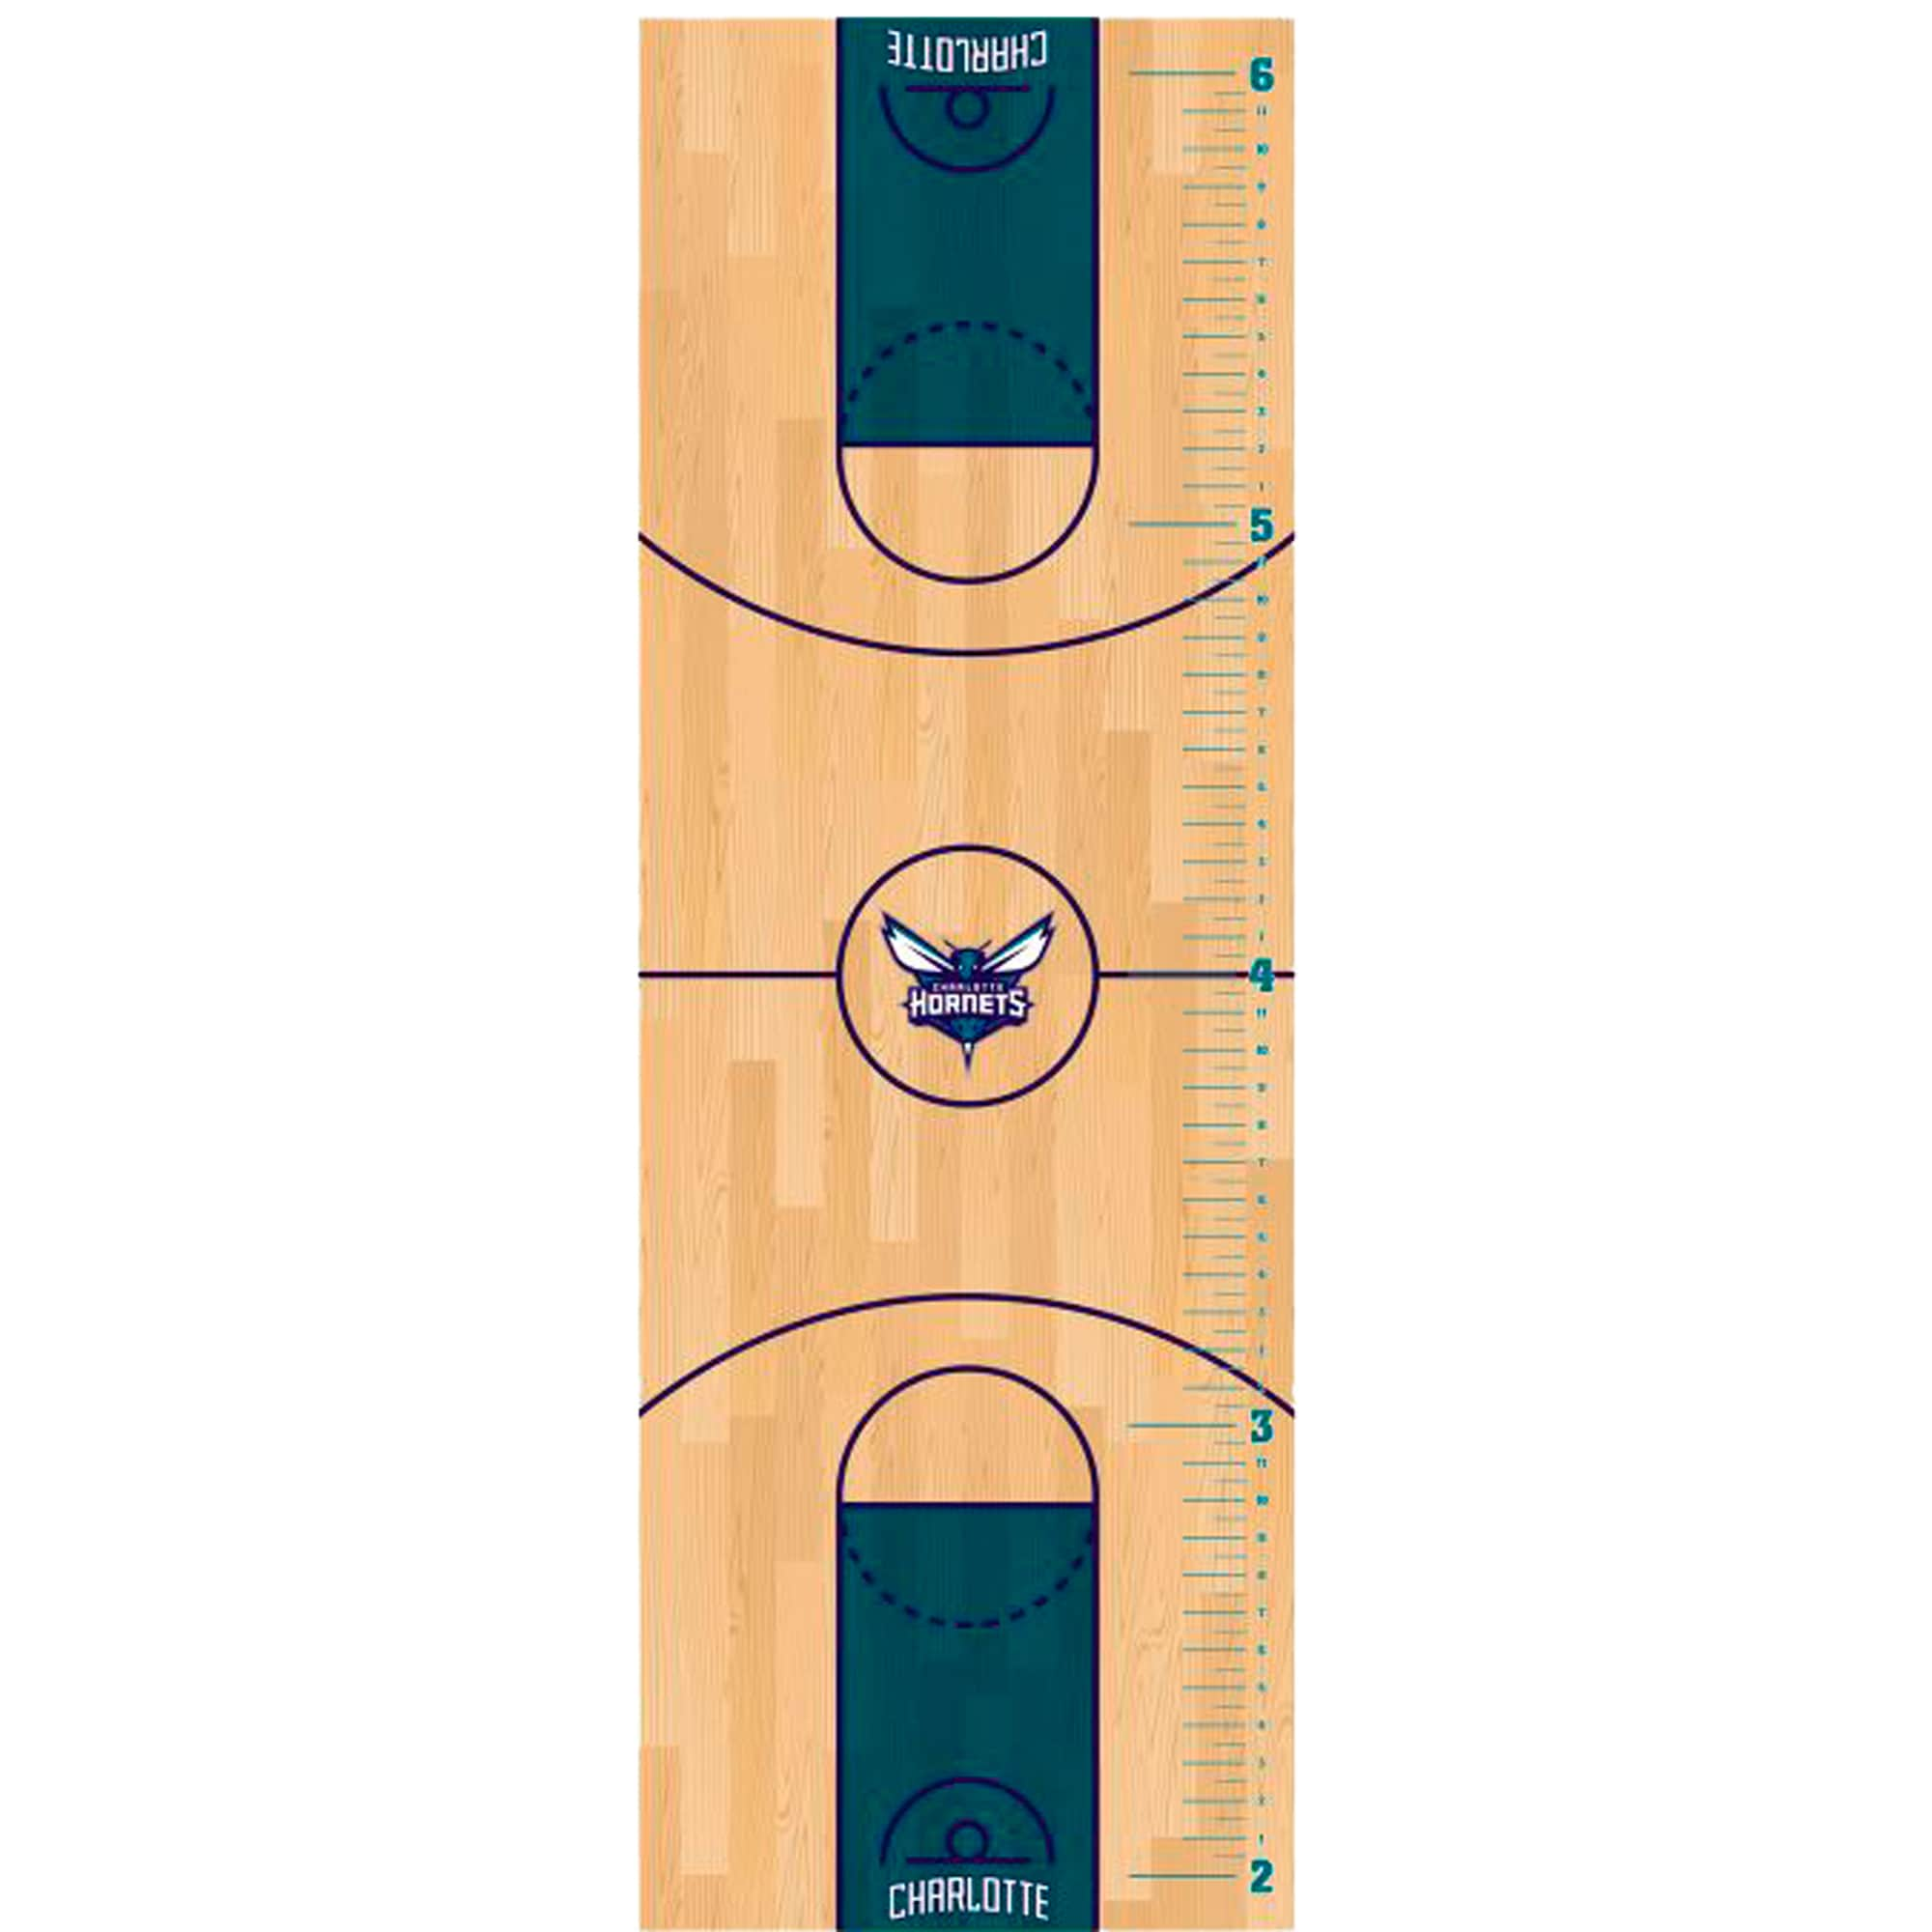 Charlotte Hornets Fathead Basketball Court Large Removable Growth Chart